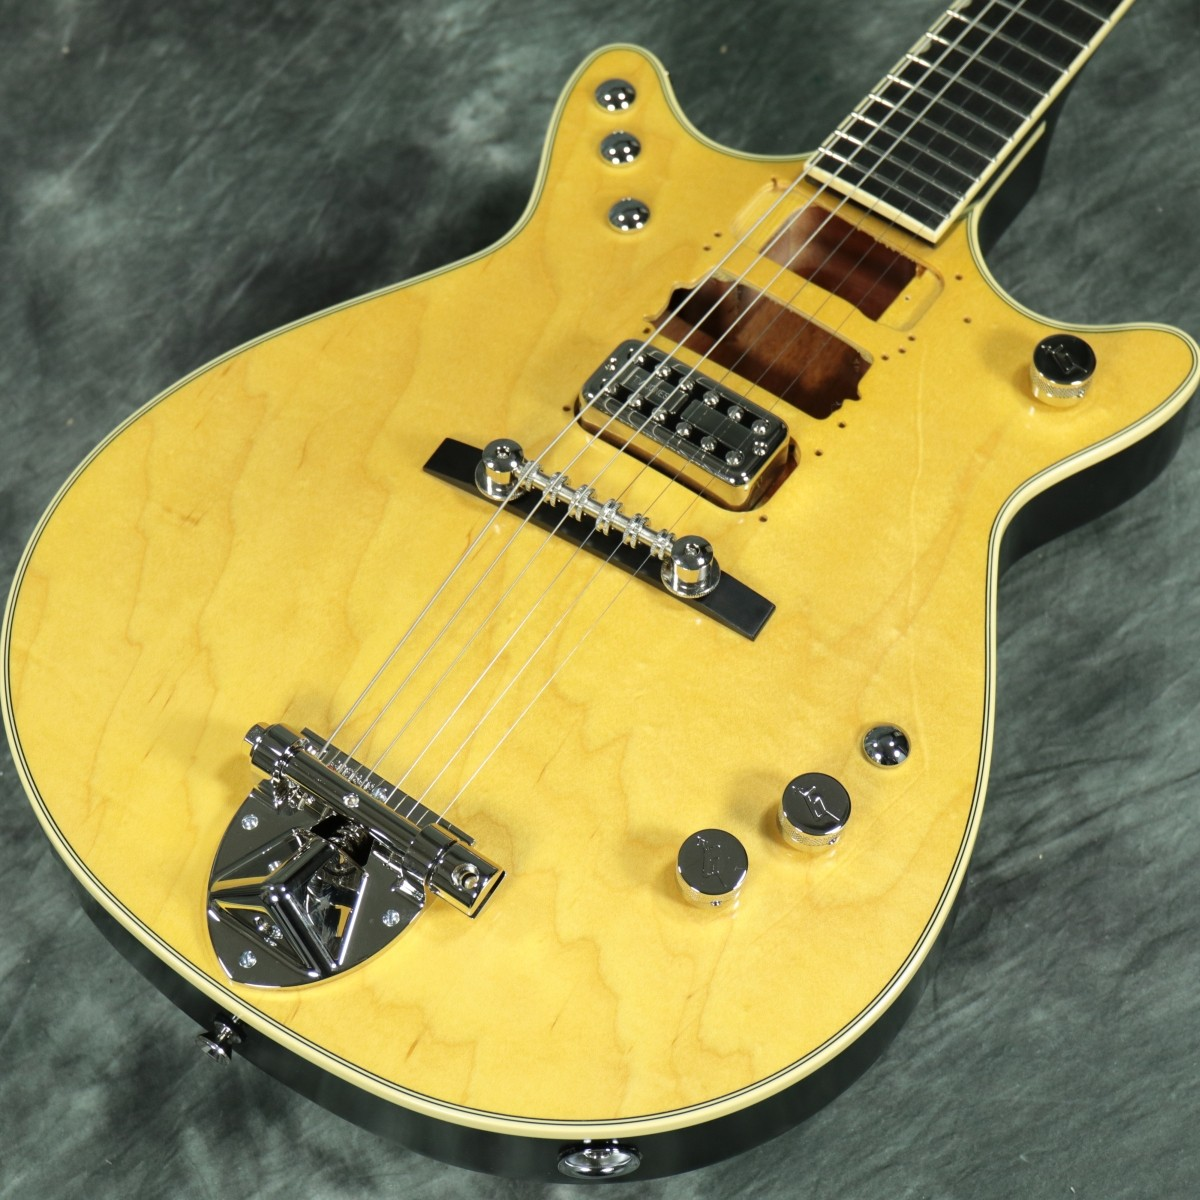 Gretsch / G6131-MY Malcolm Young Signature Jet グレッチ【お取り寄せ商品】